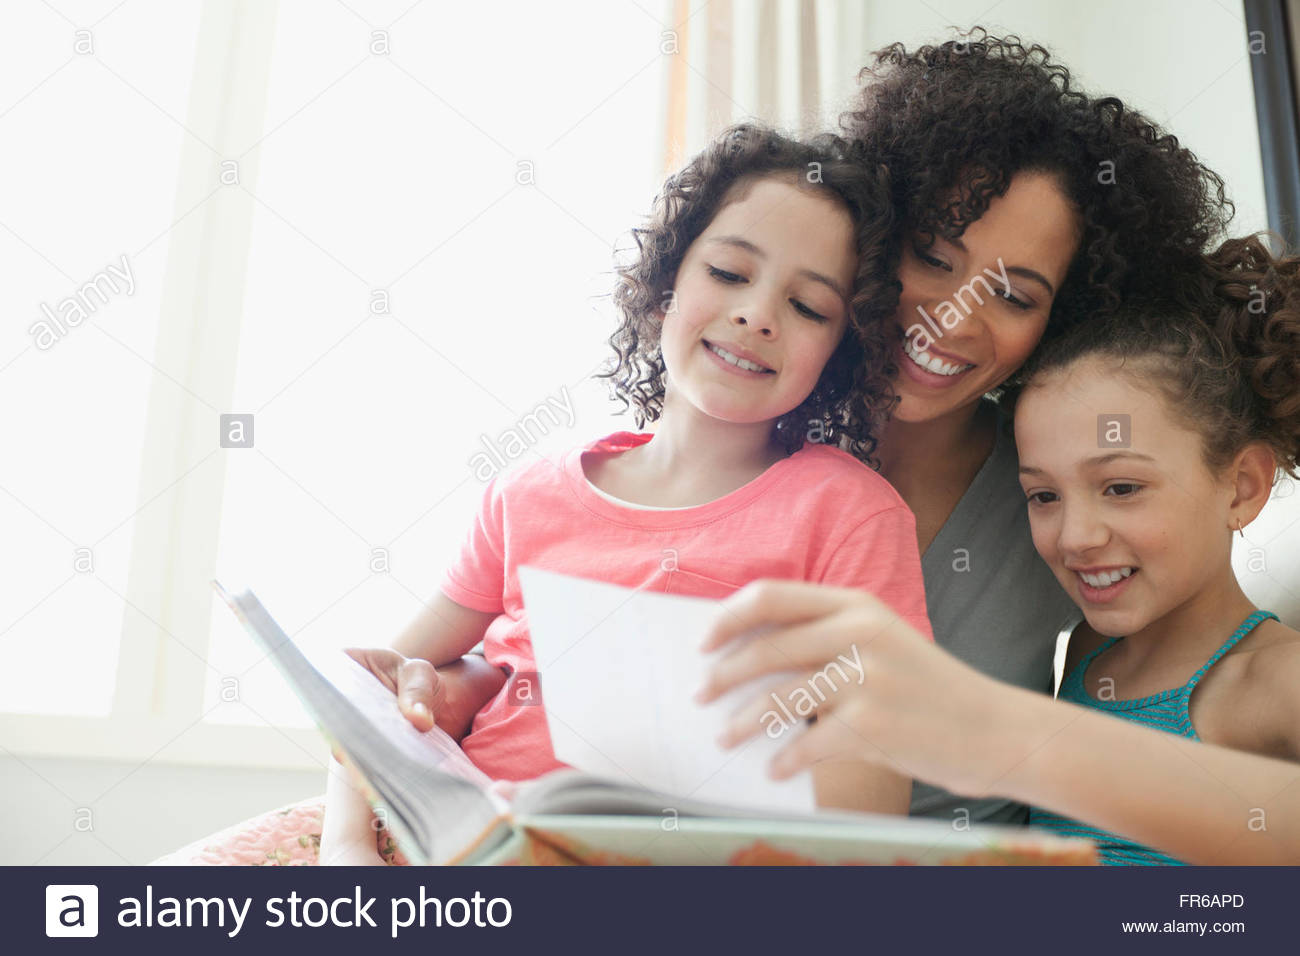 mom and daughters looking at photos - Stock Image